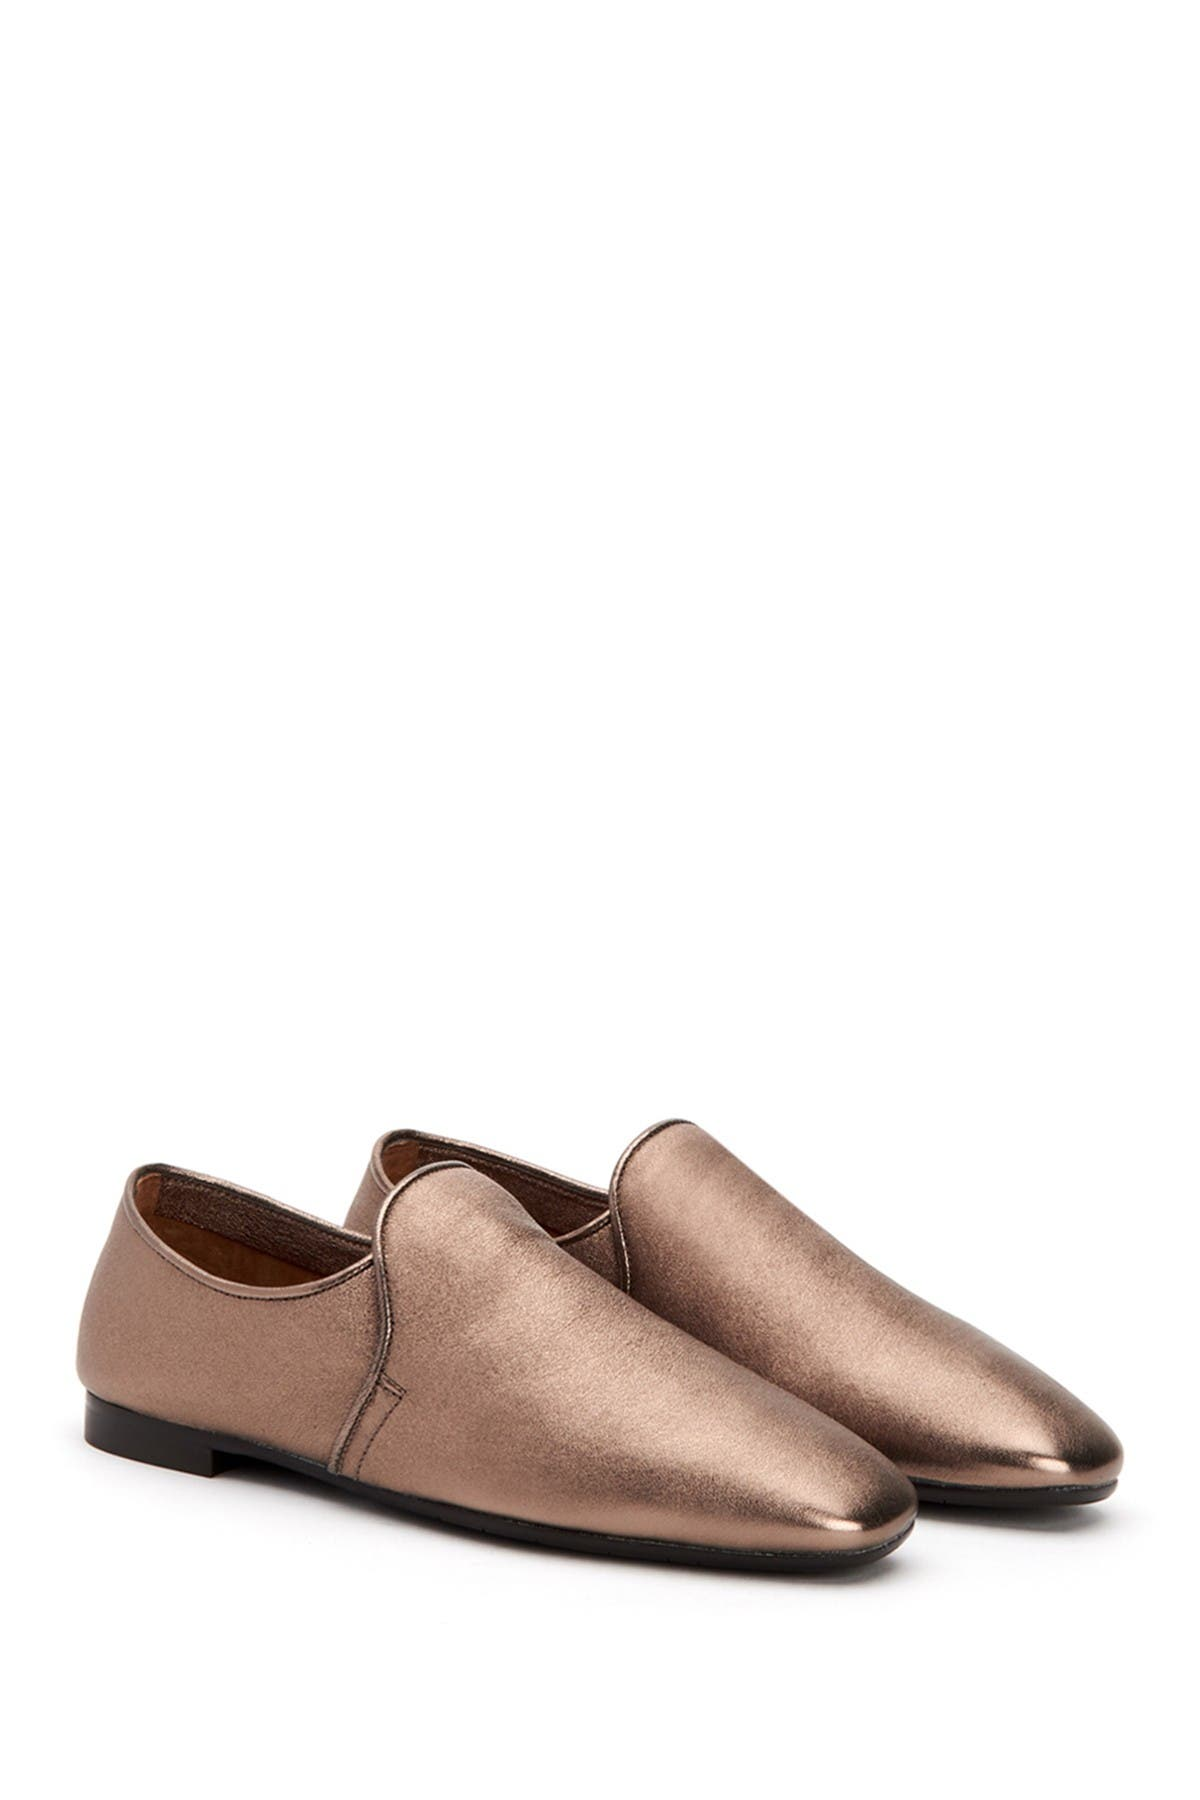 Image of Aquatalia Revy Leather Slip-On Shoe